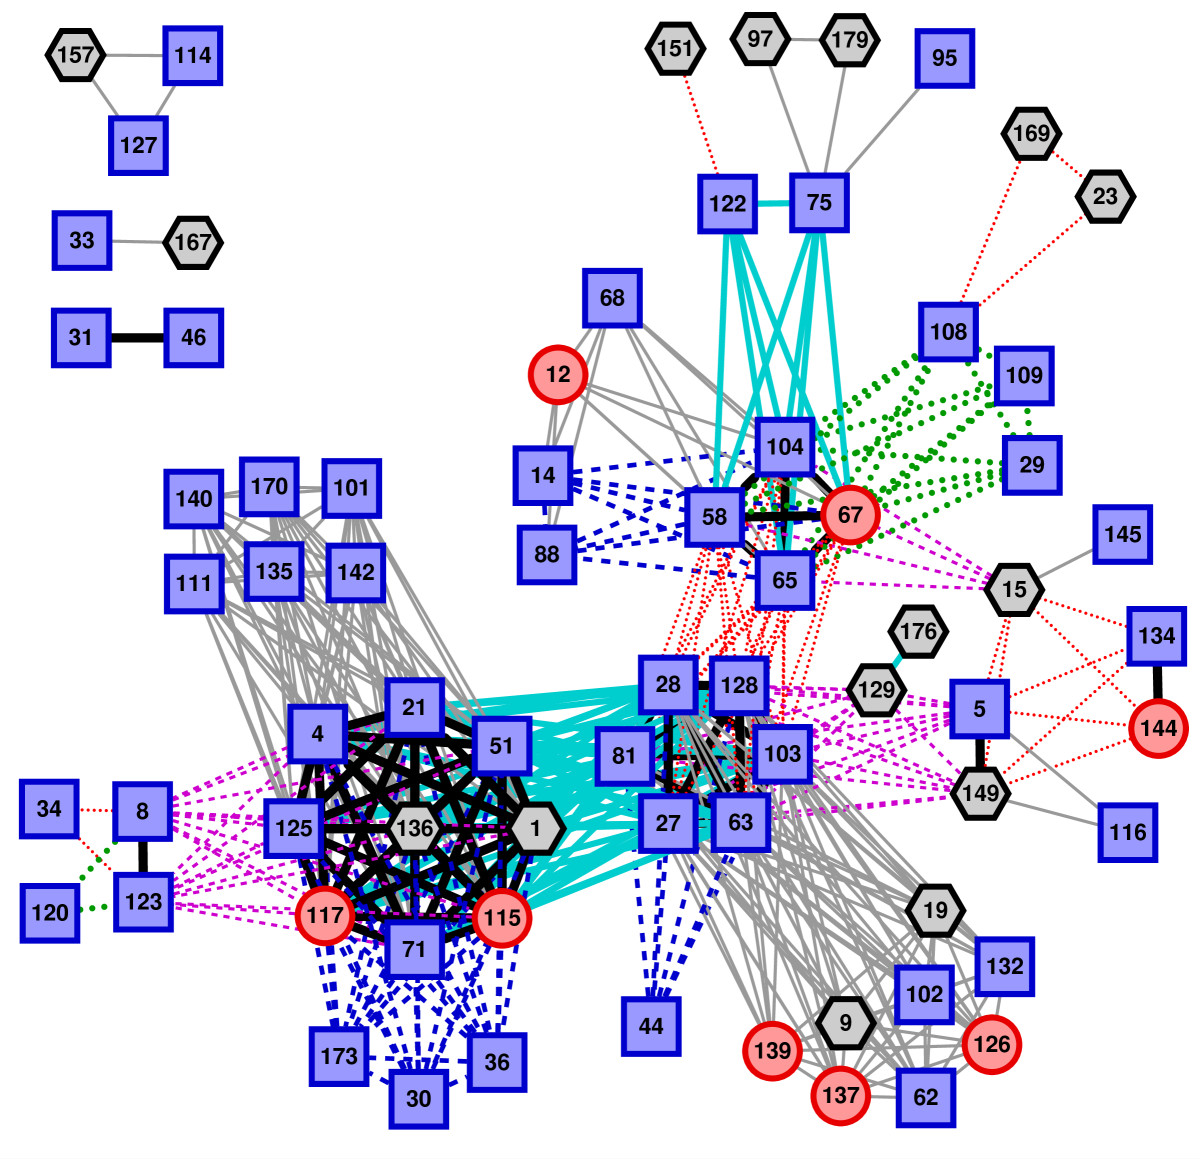 http://static-content.springer.com/image/art%3A10.1140%2Fepjds10/MediaObjects/13688_2012_Article_9_Fig14_HTML.jpg